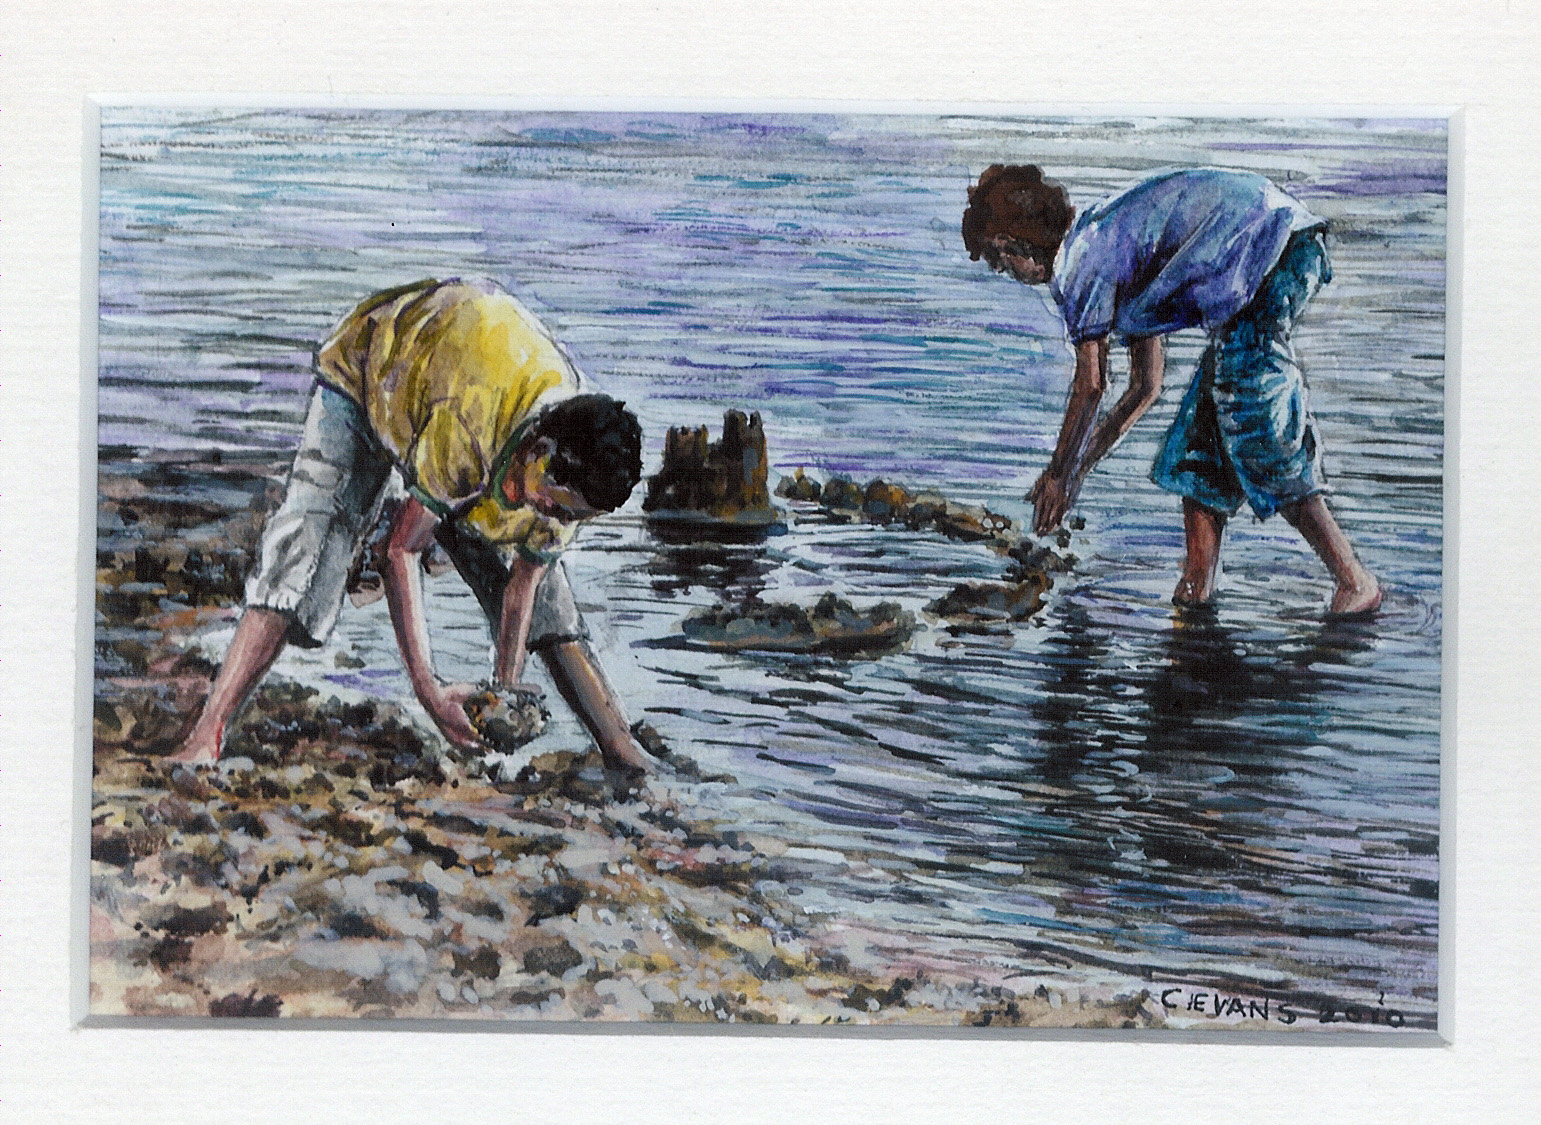 59 Engineers at Work by Carrol Evans - Watercolour